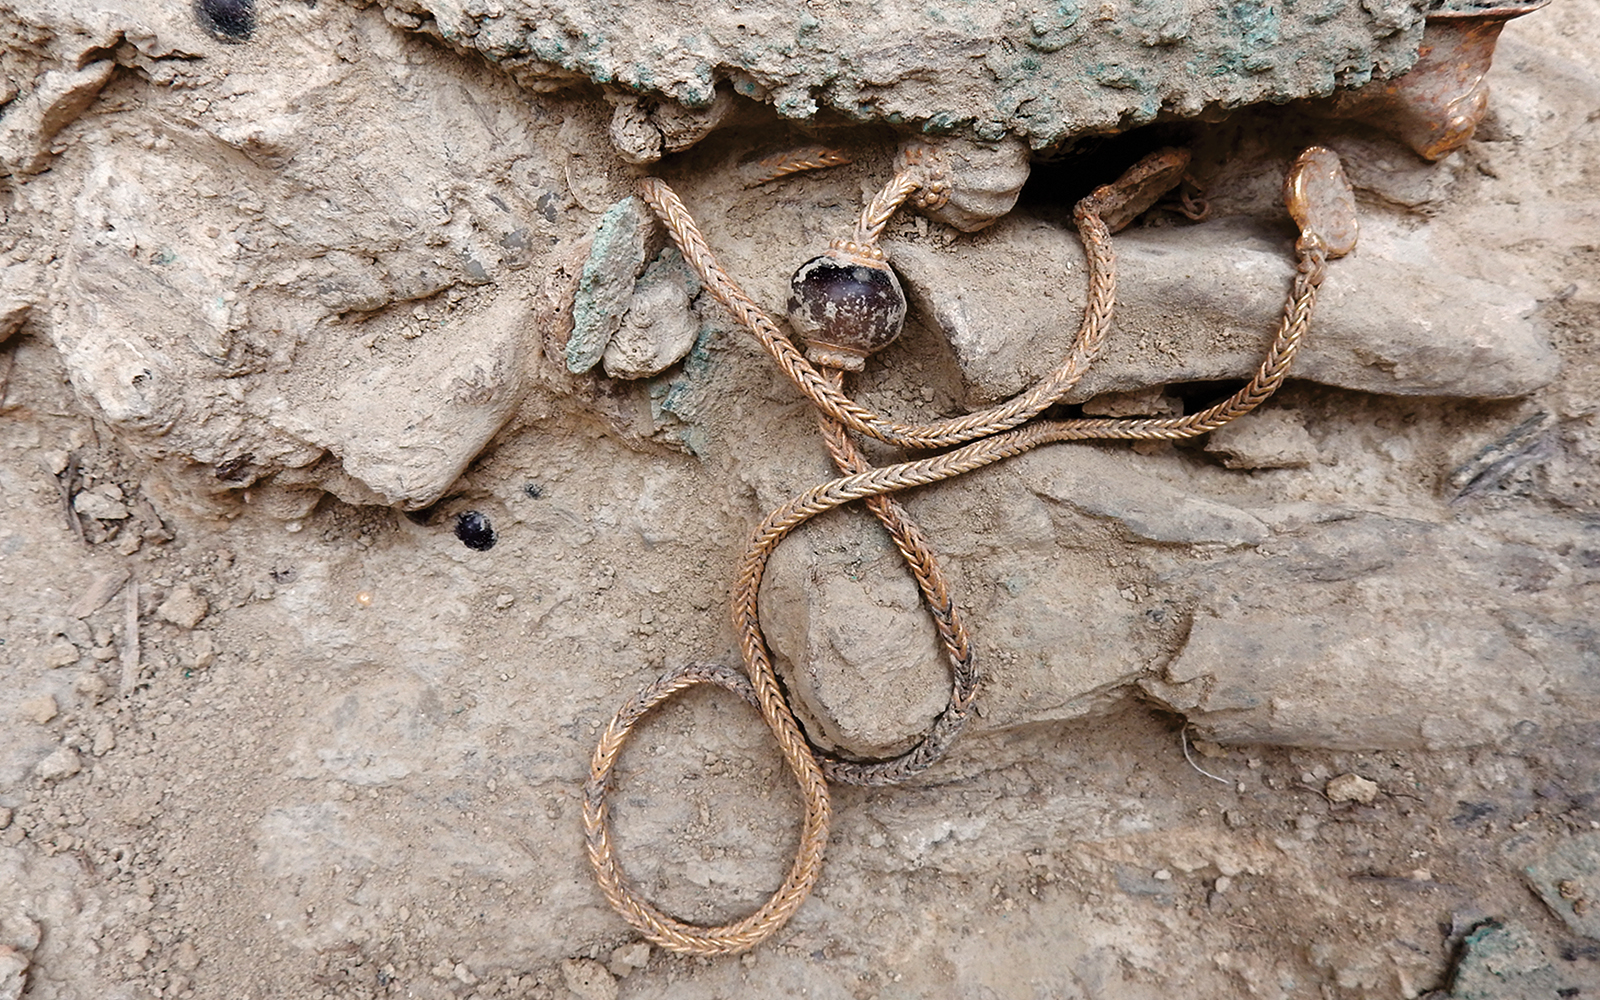 More treasures from the tomb: a gold necklace before removal (top).